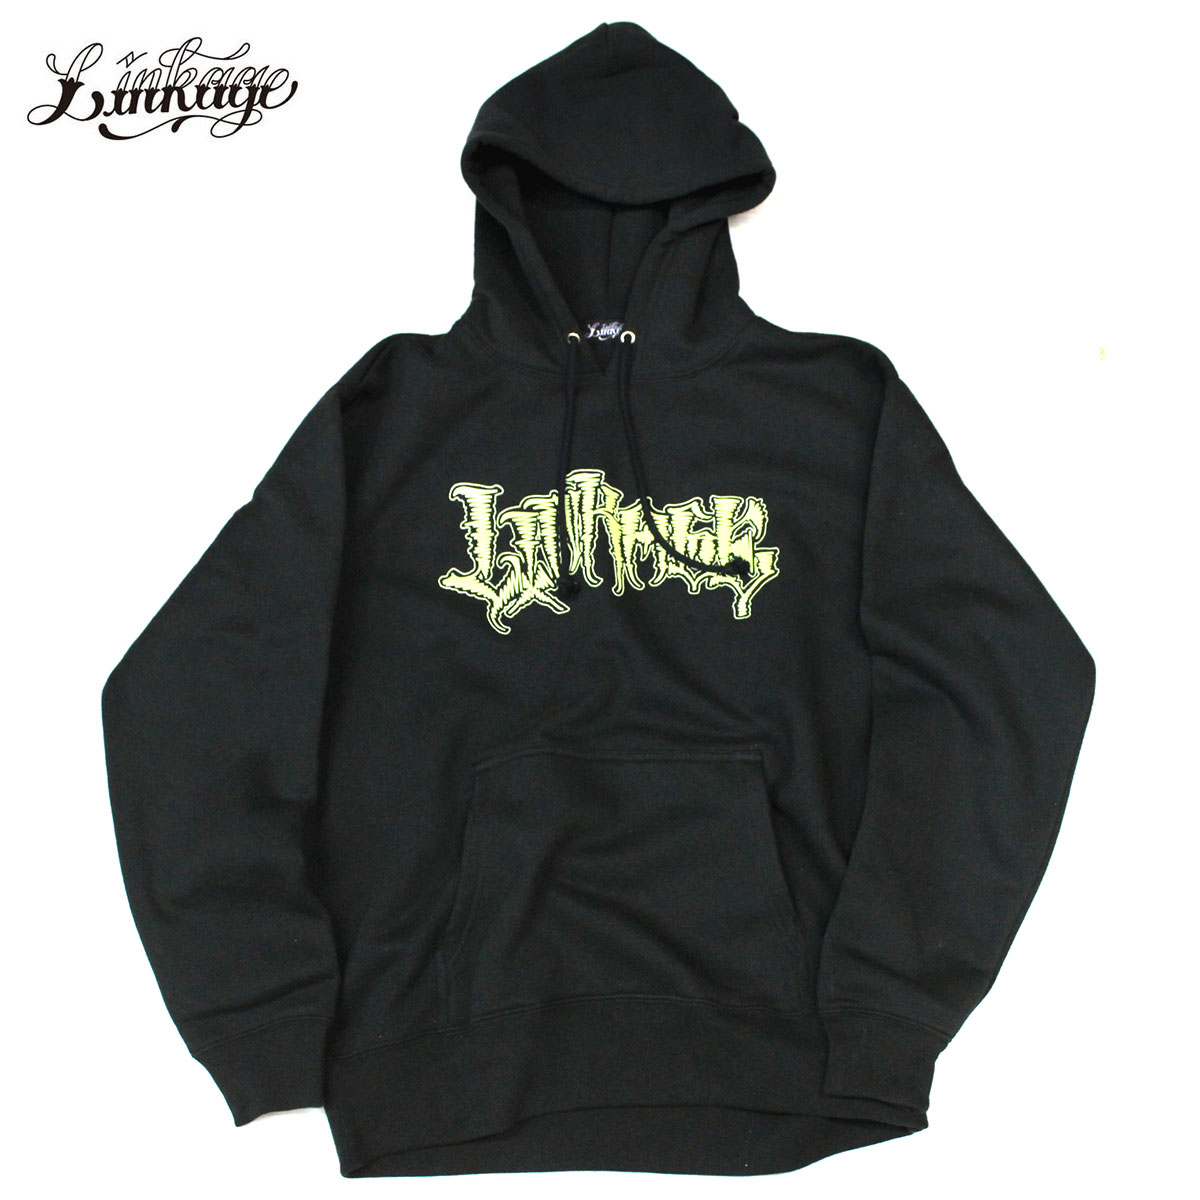 LINKAGE (linkage) NORM ALL DAY PULLOVER HOODY Grow in the dark (back raising logo pullover parka) phosphorescence shining sweat shirt men winter print pullover thermal insulation warmth worth black / Sullen Clothing / Black Scale / Us Versus Them